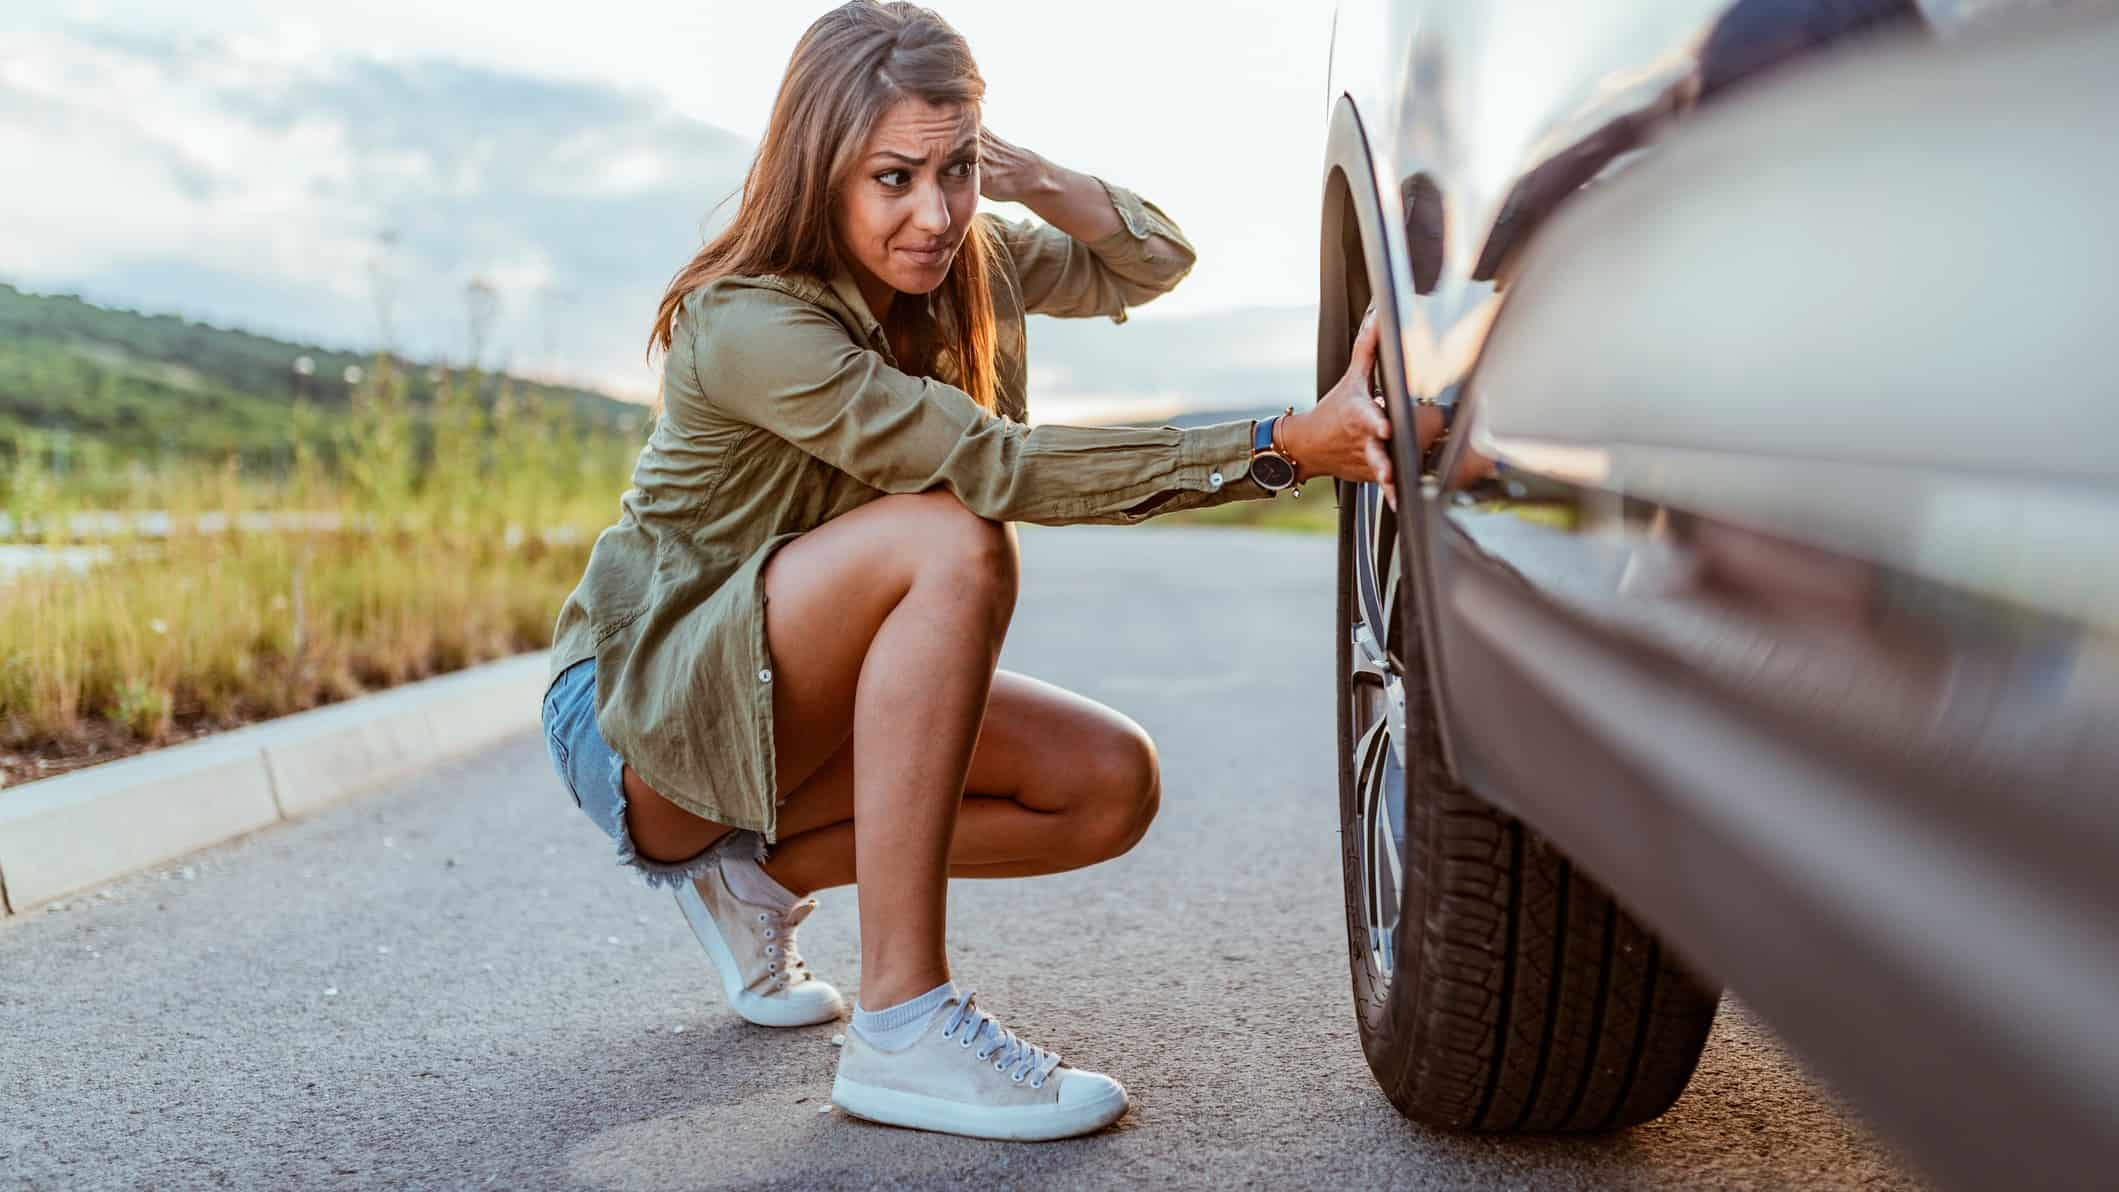 A woman stops on a road to check the tyre or wheel on her car